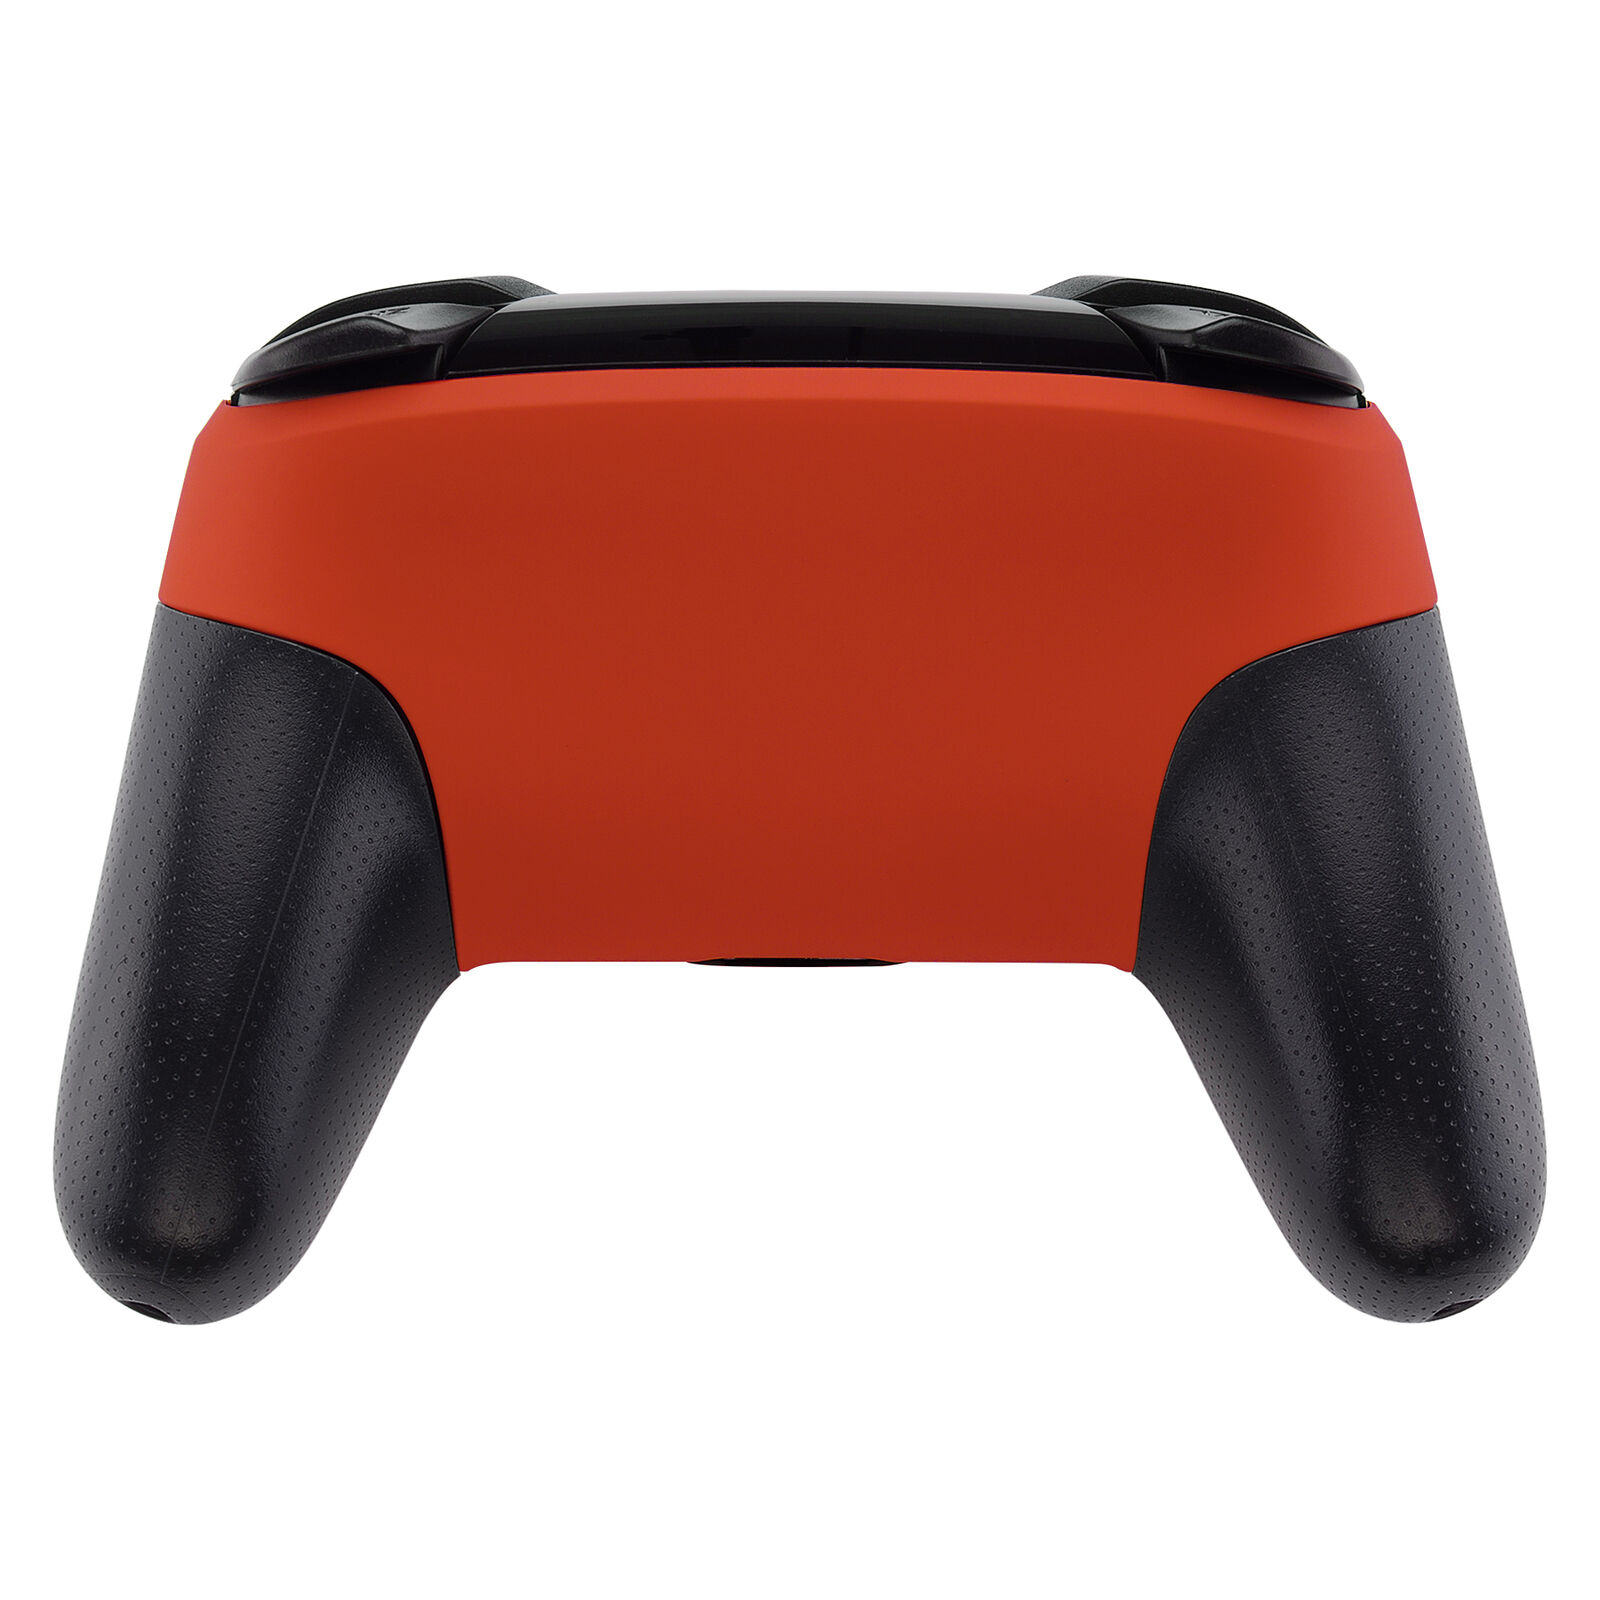 Nintendo Switch Pro Controller Black and Matte Orange Faceplate